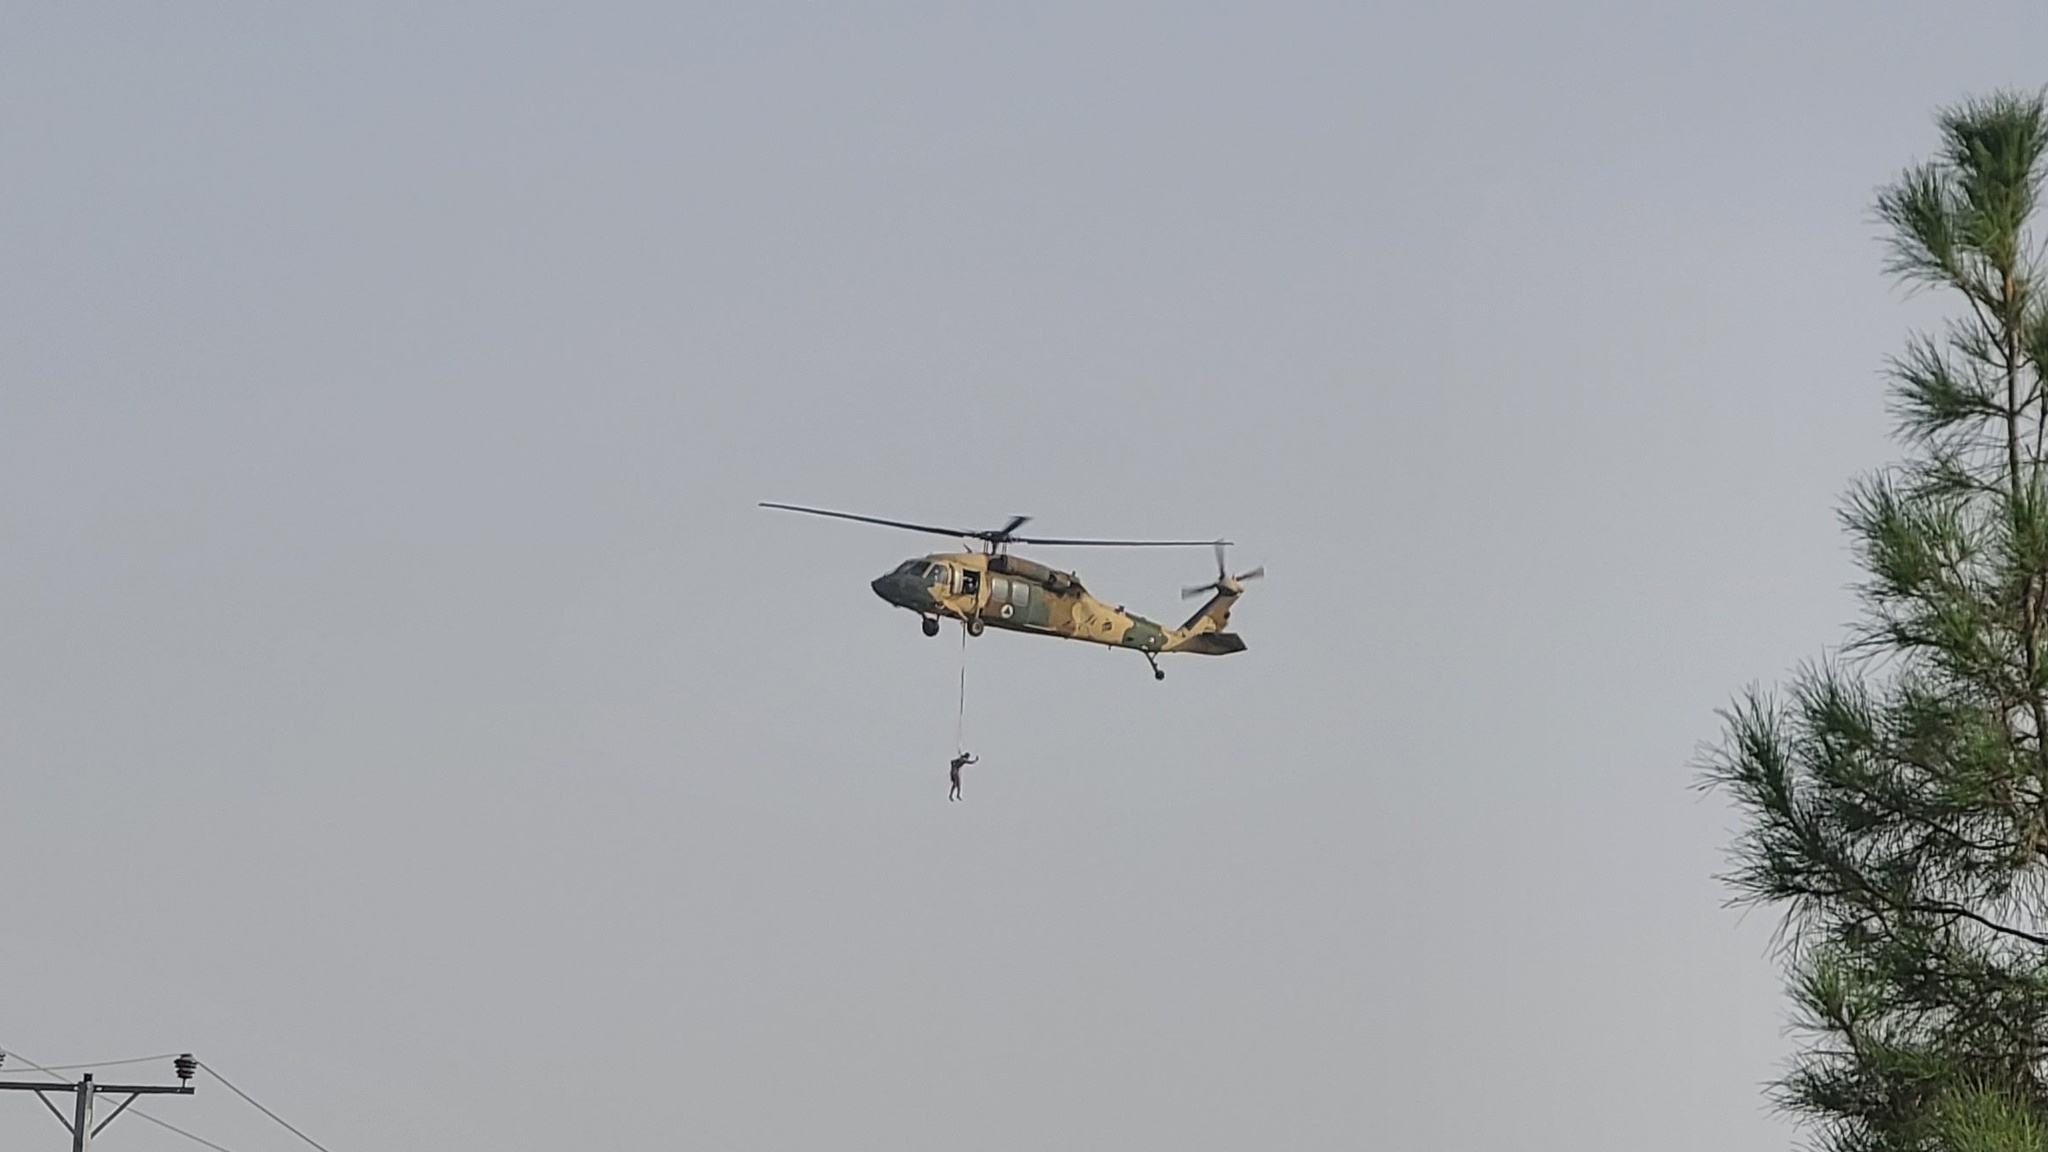 Taliban 'hanged people' from Black Hawk helicopter - real or fake?  - photo 2